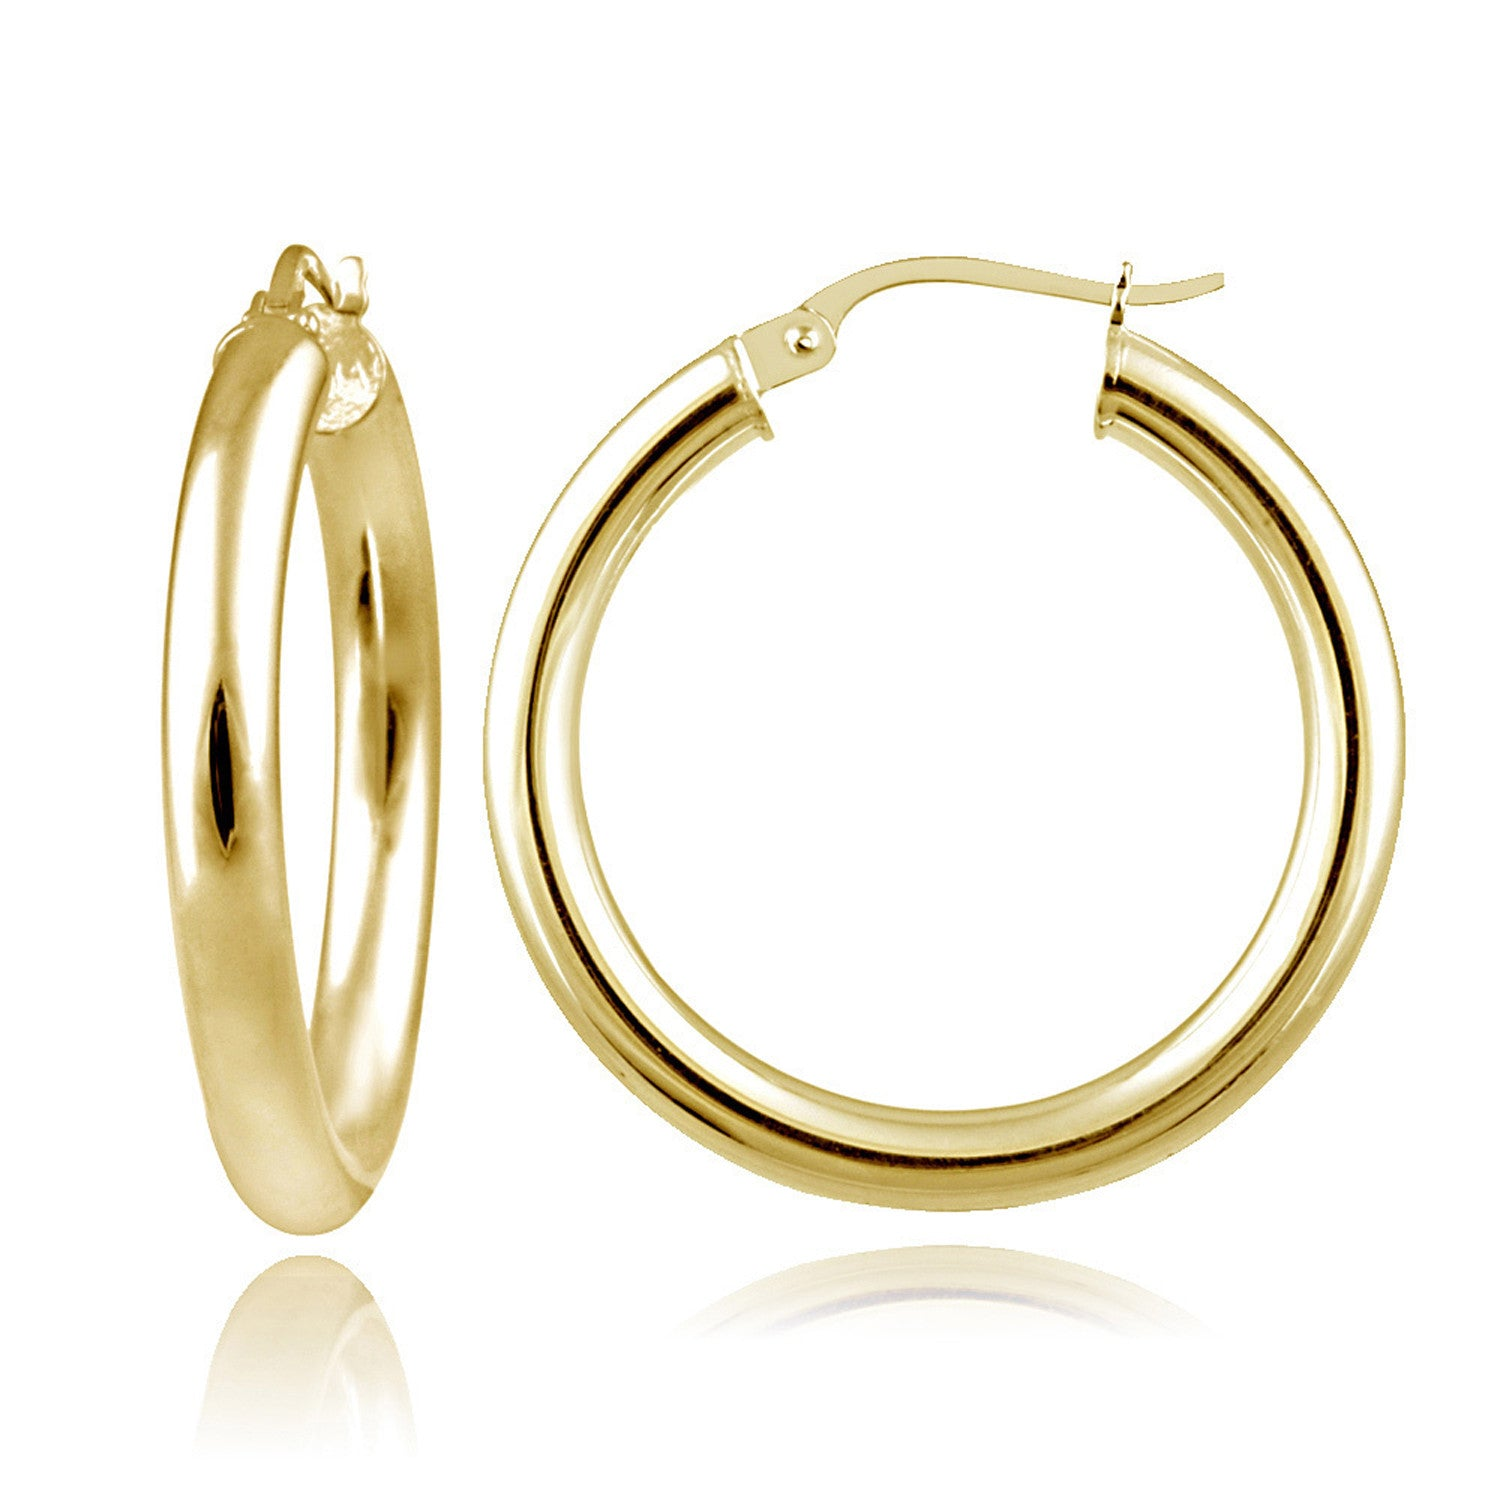 Polished Sterling Silver 25mm Round Saddleback Hoop Earrings - Yellow Gold